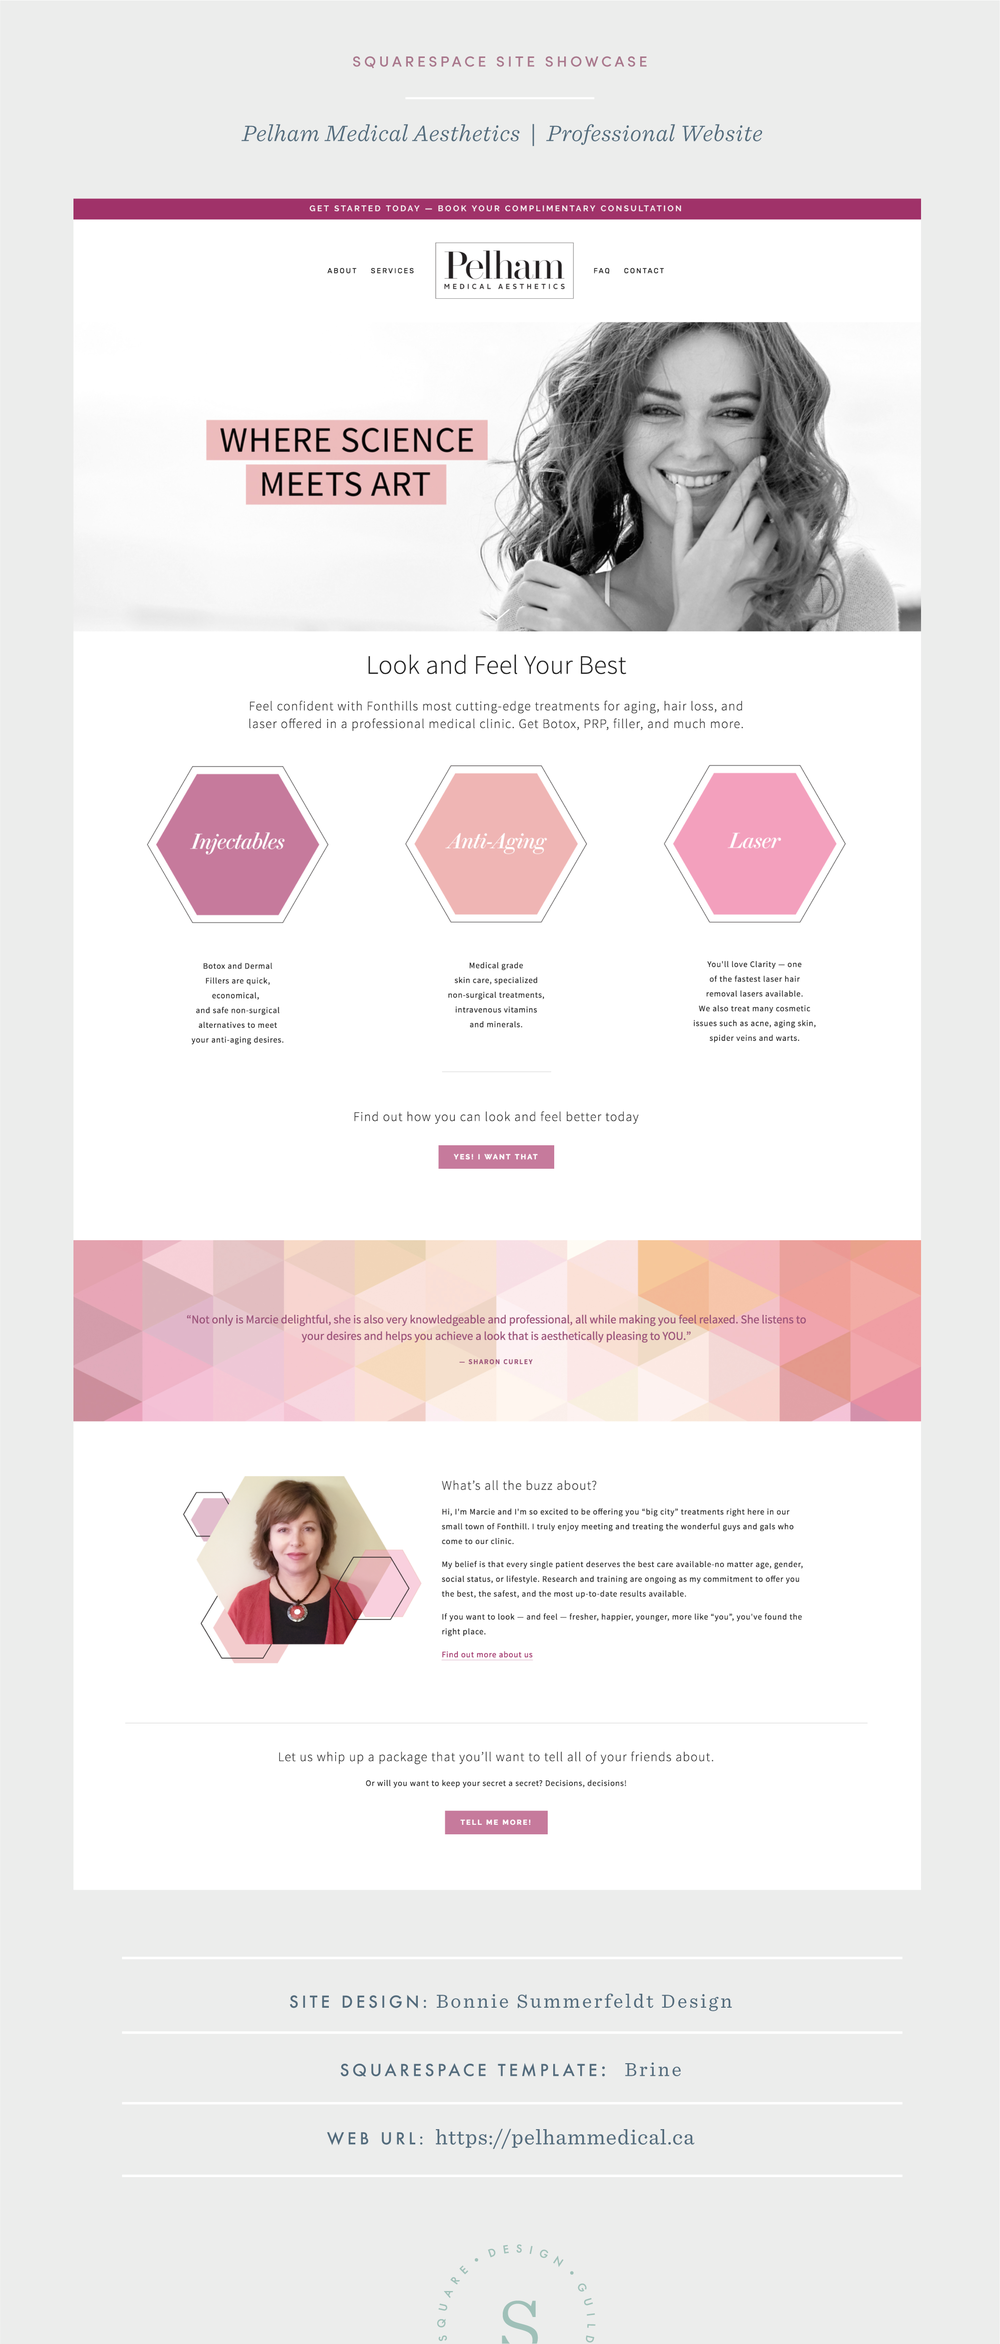 Light and bright services website for Squarespace on Brine Template